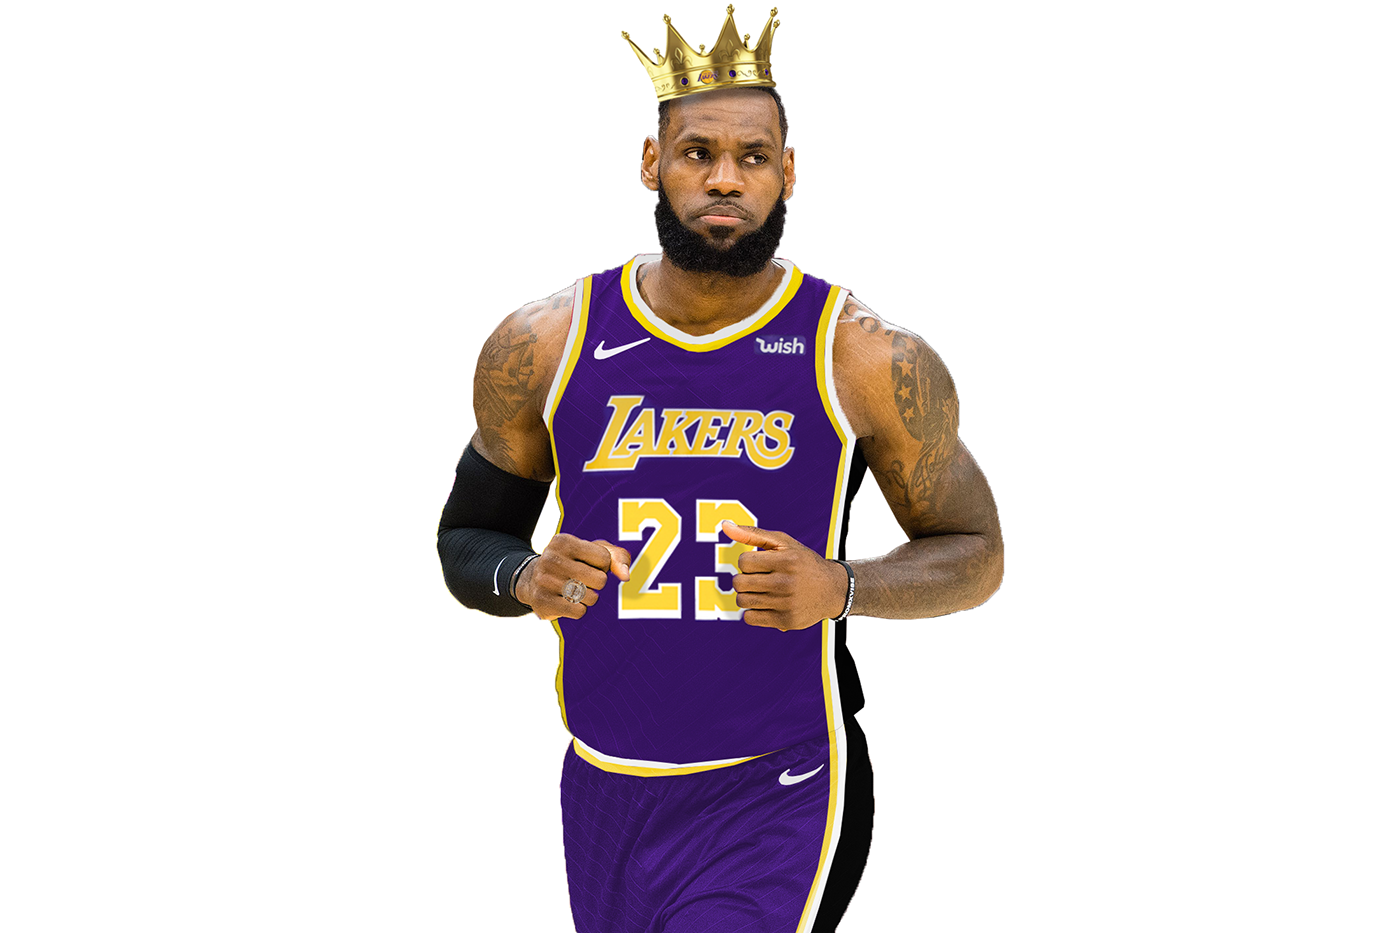 Lebron James Wallpaper Hd June 2017